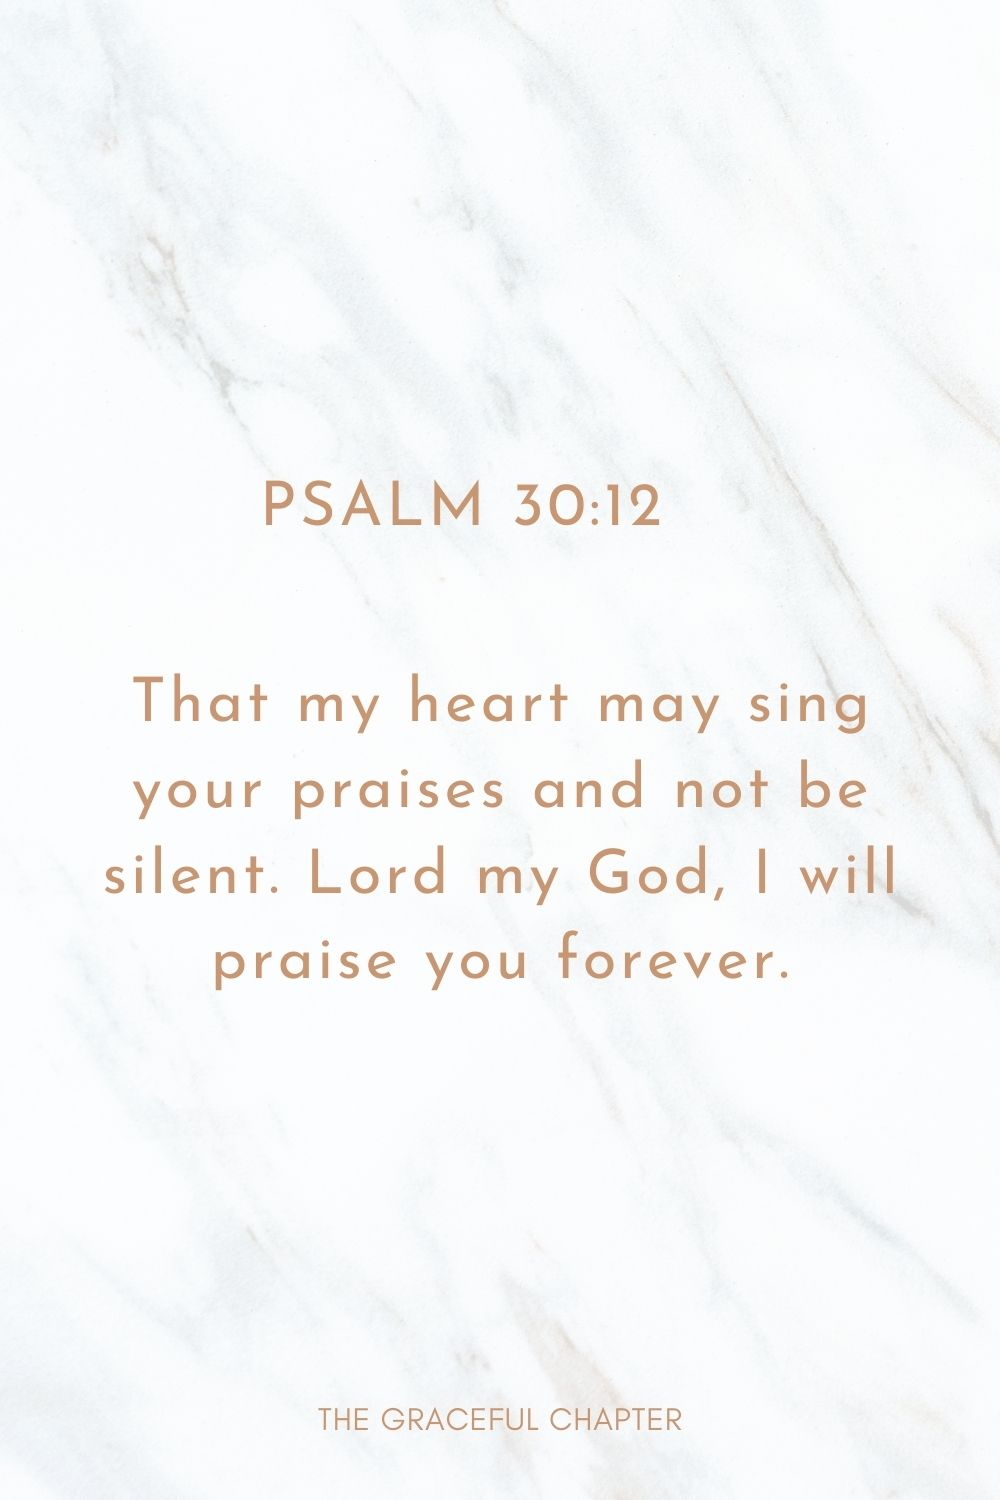 That my heart may sing your praises and not be silent. Lord my God, I will praise you forever. Psalm 30:12